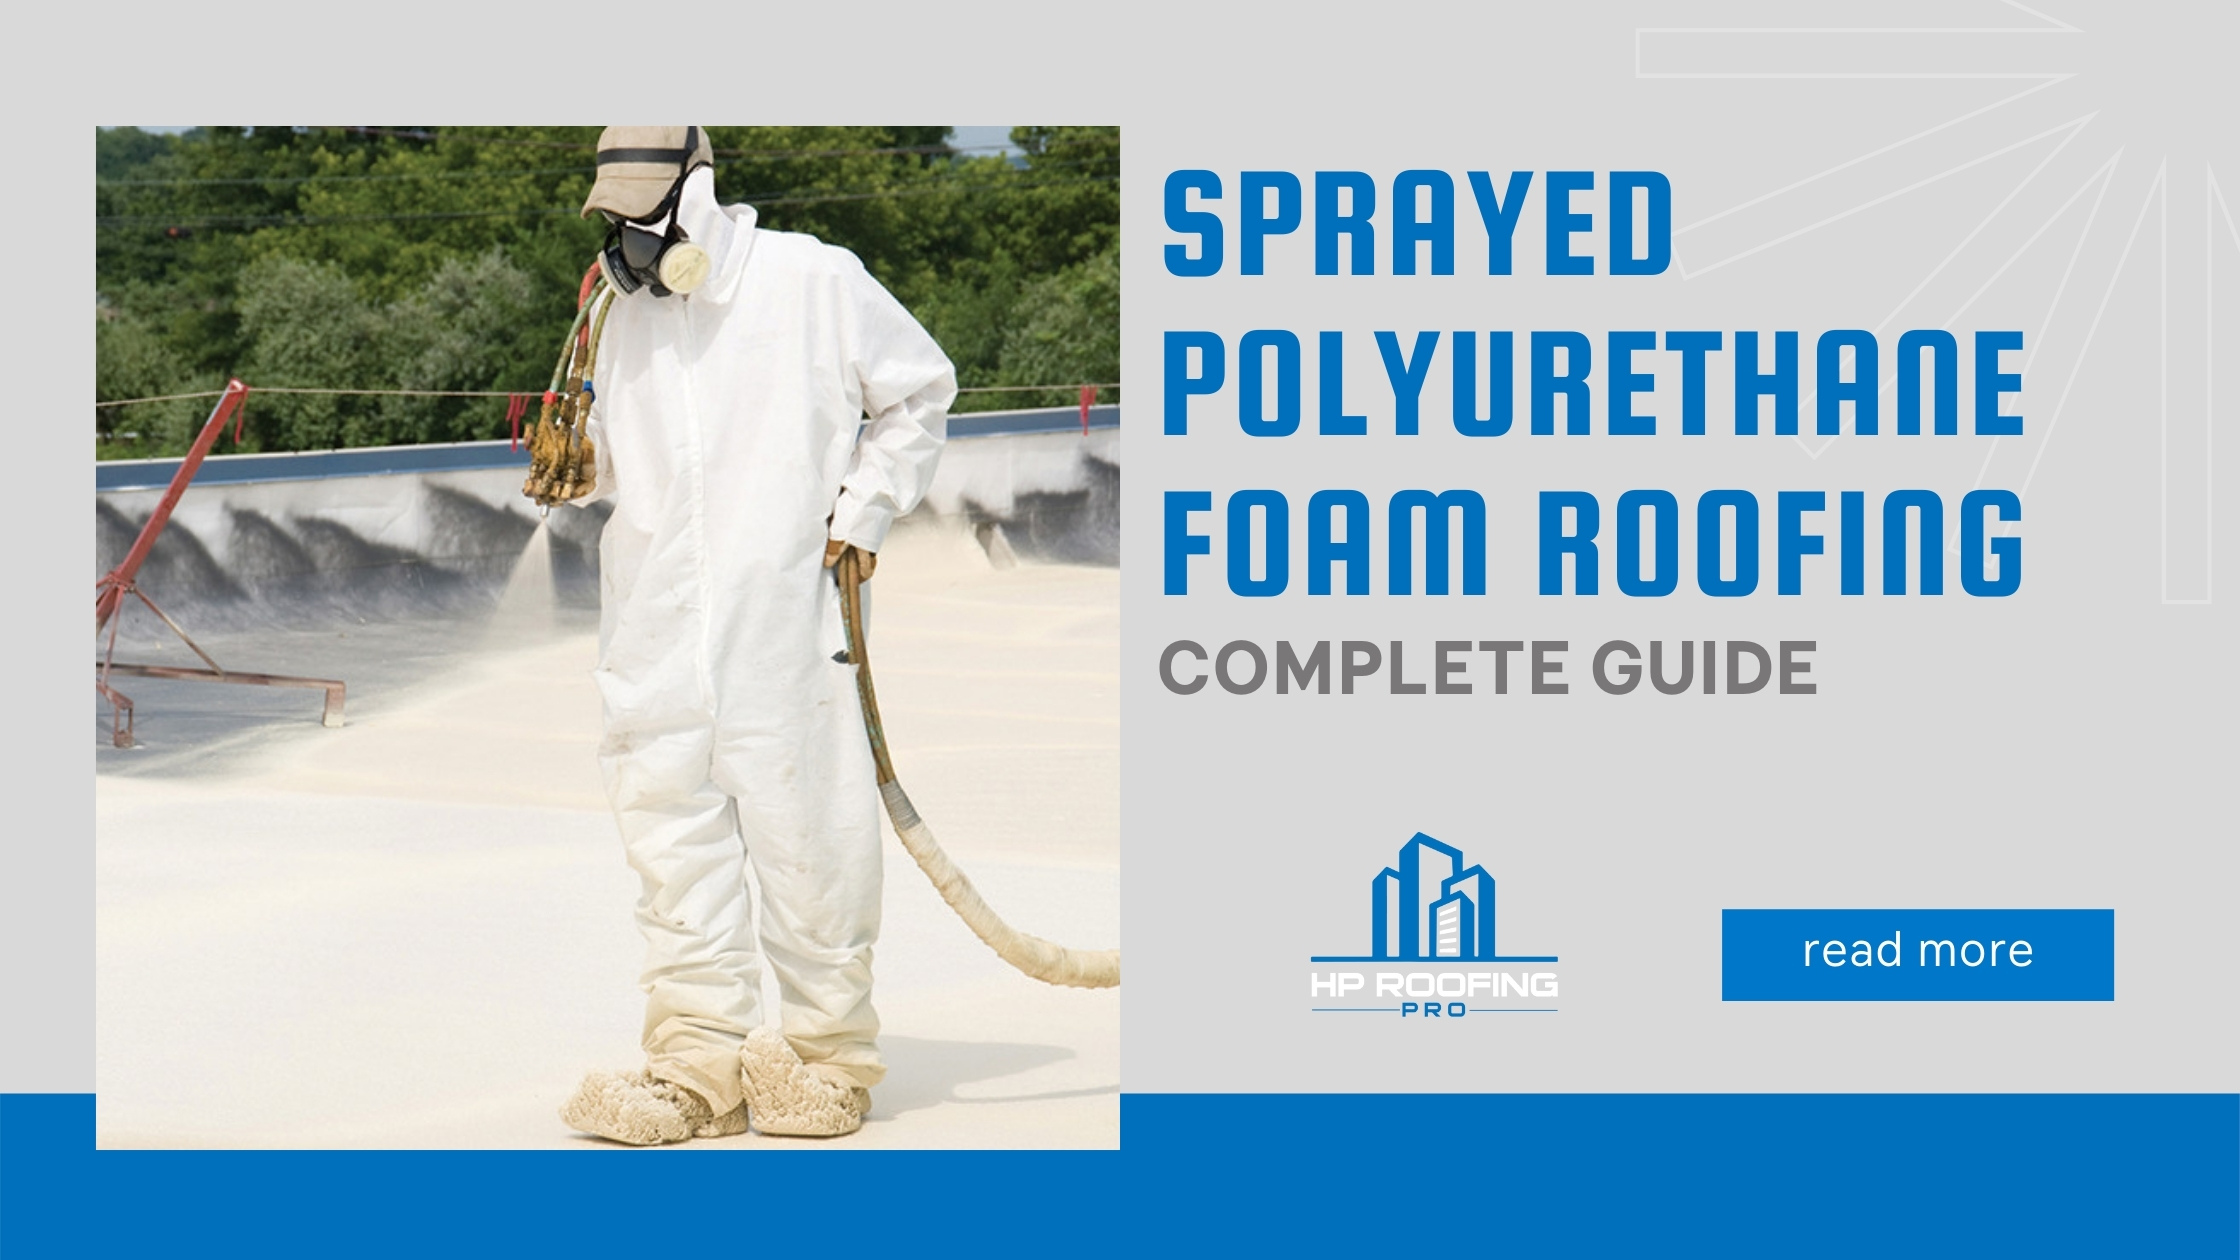 The Complete Guide to Sprayed Polyurethane Foam Roofing